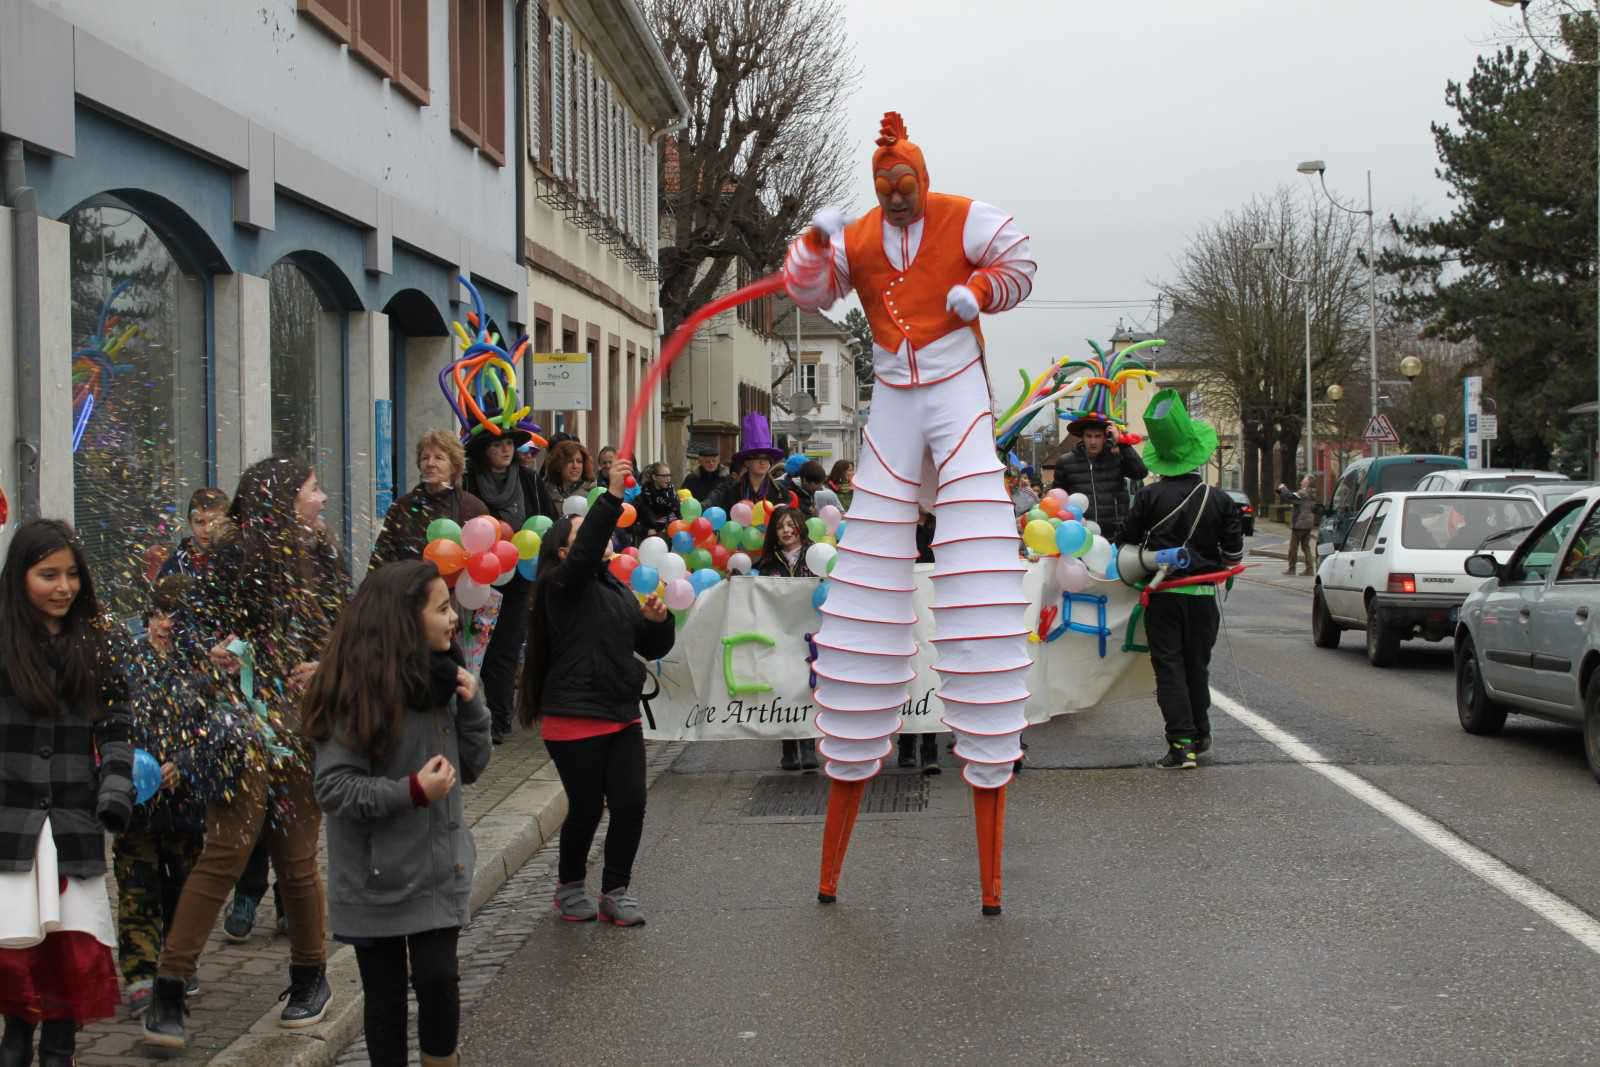 27022015 - Carnaval selection (3)